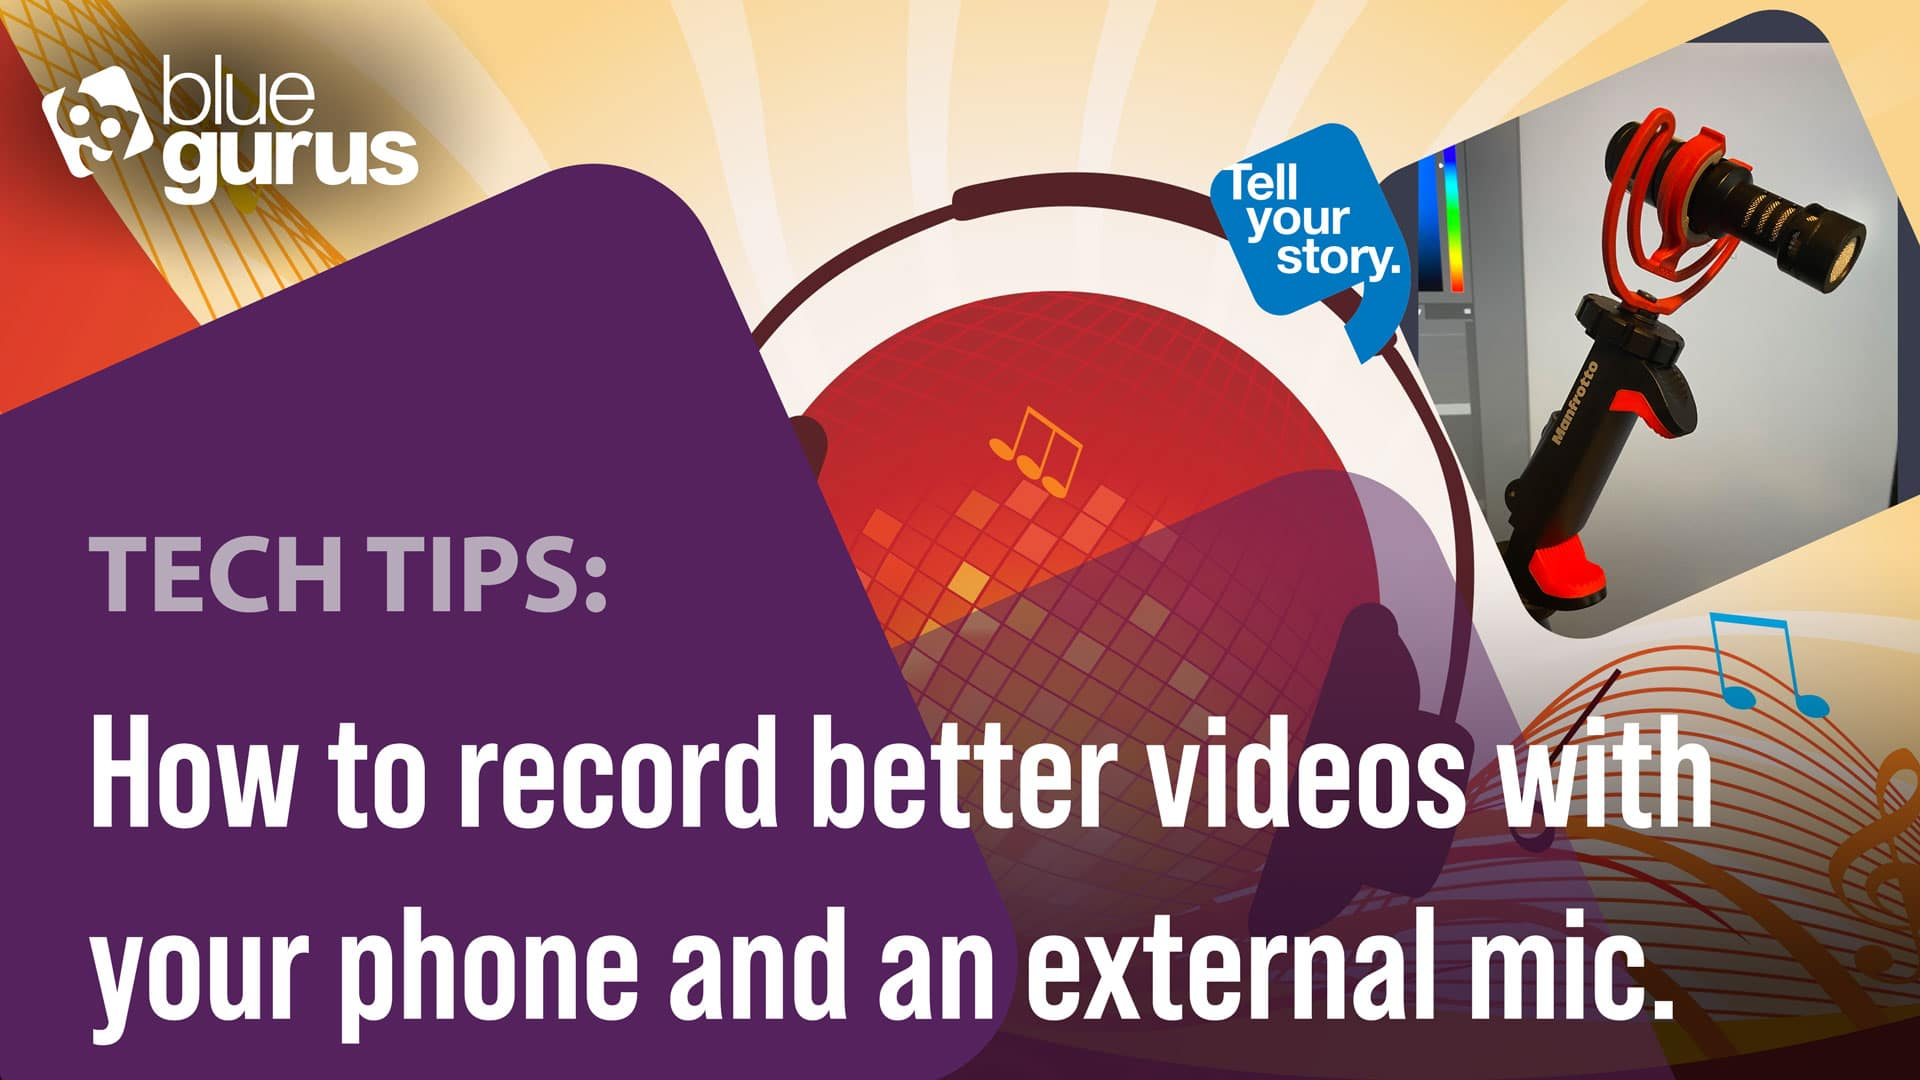 How to record better videos with your phone and an external mic.